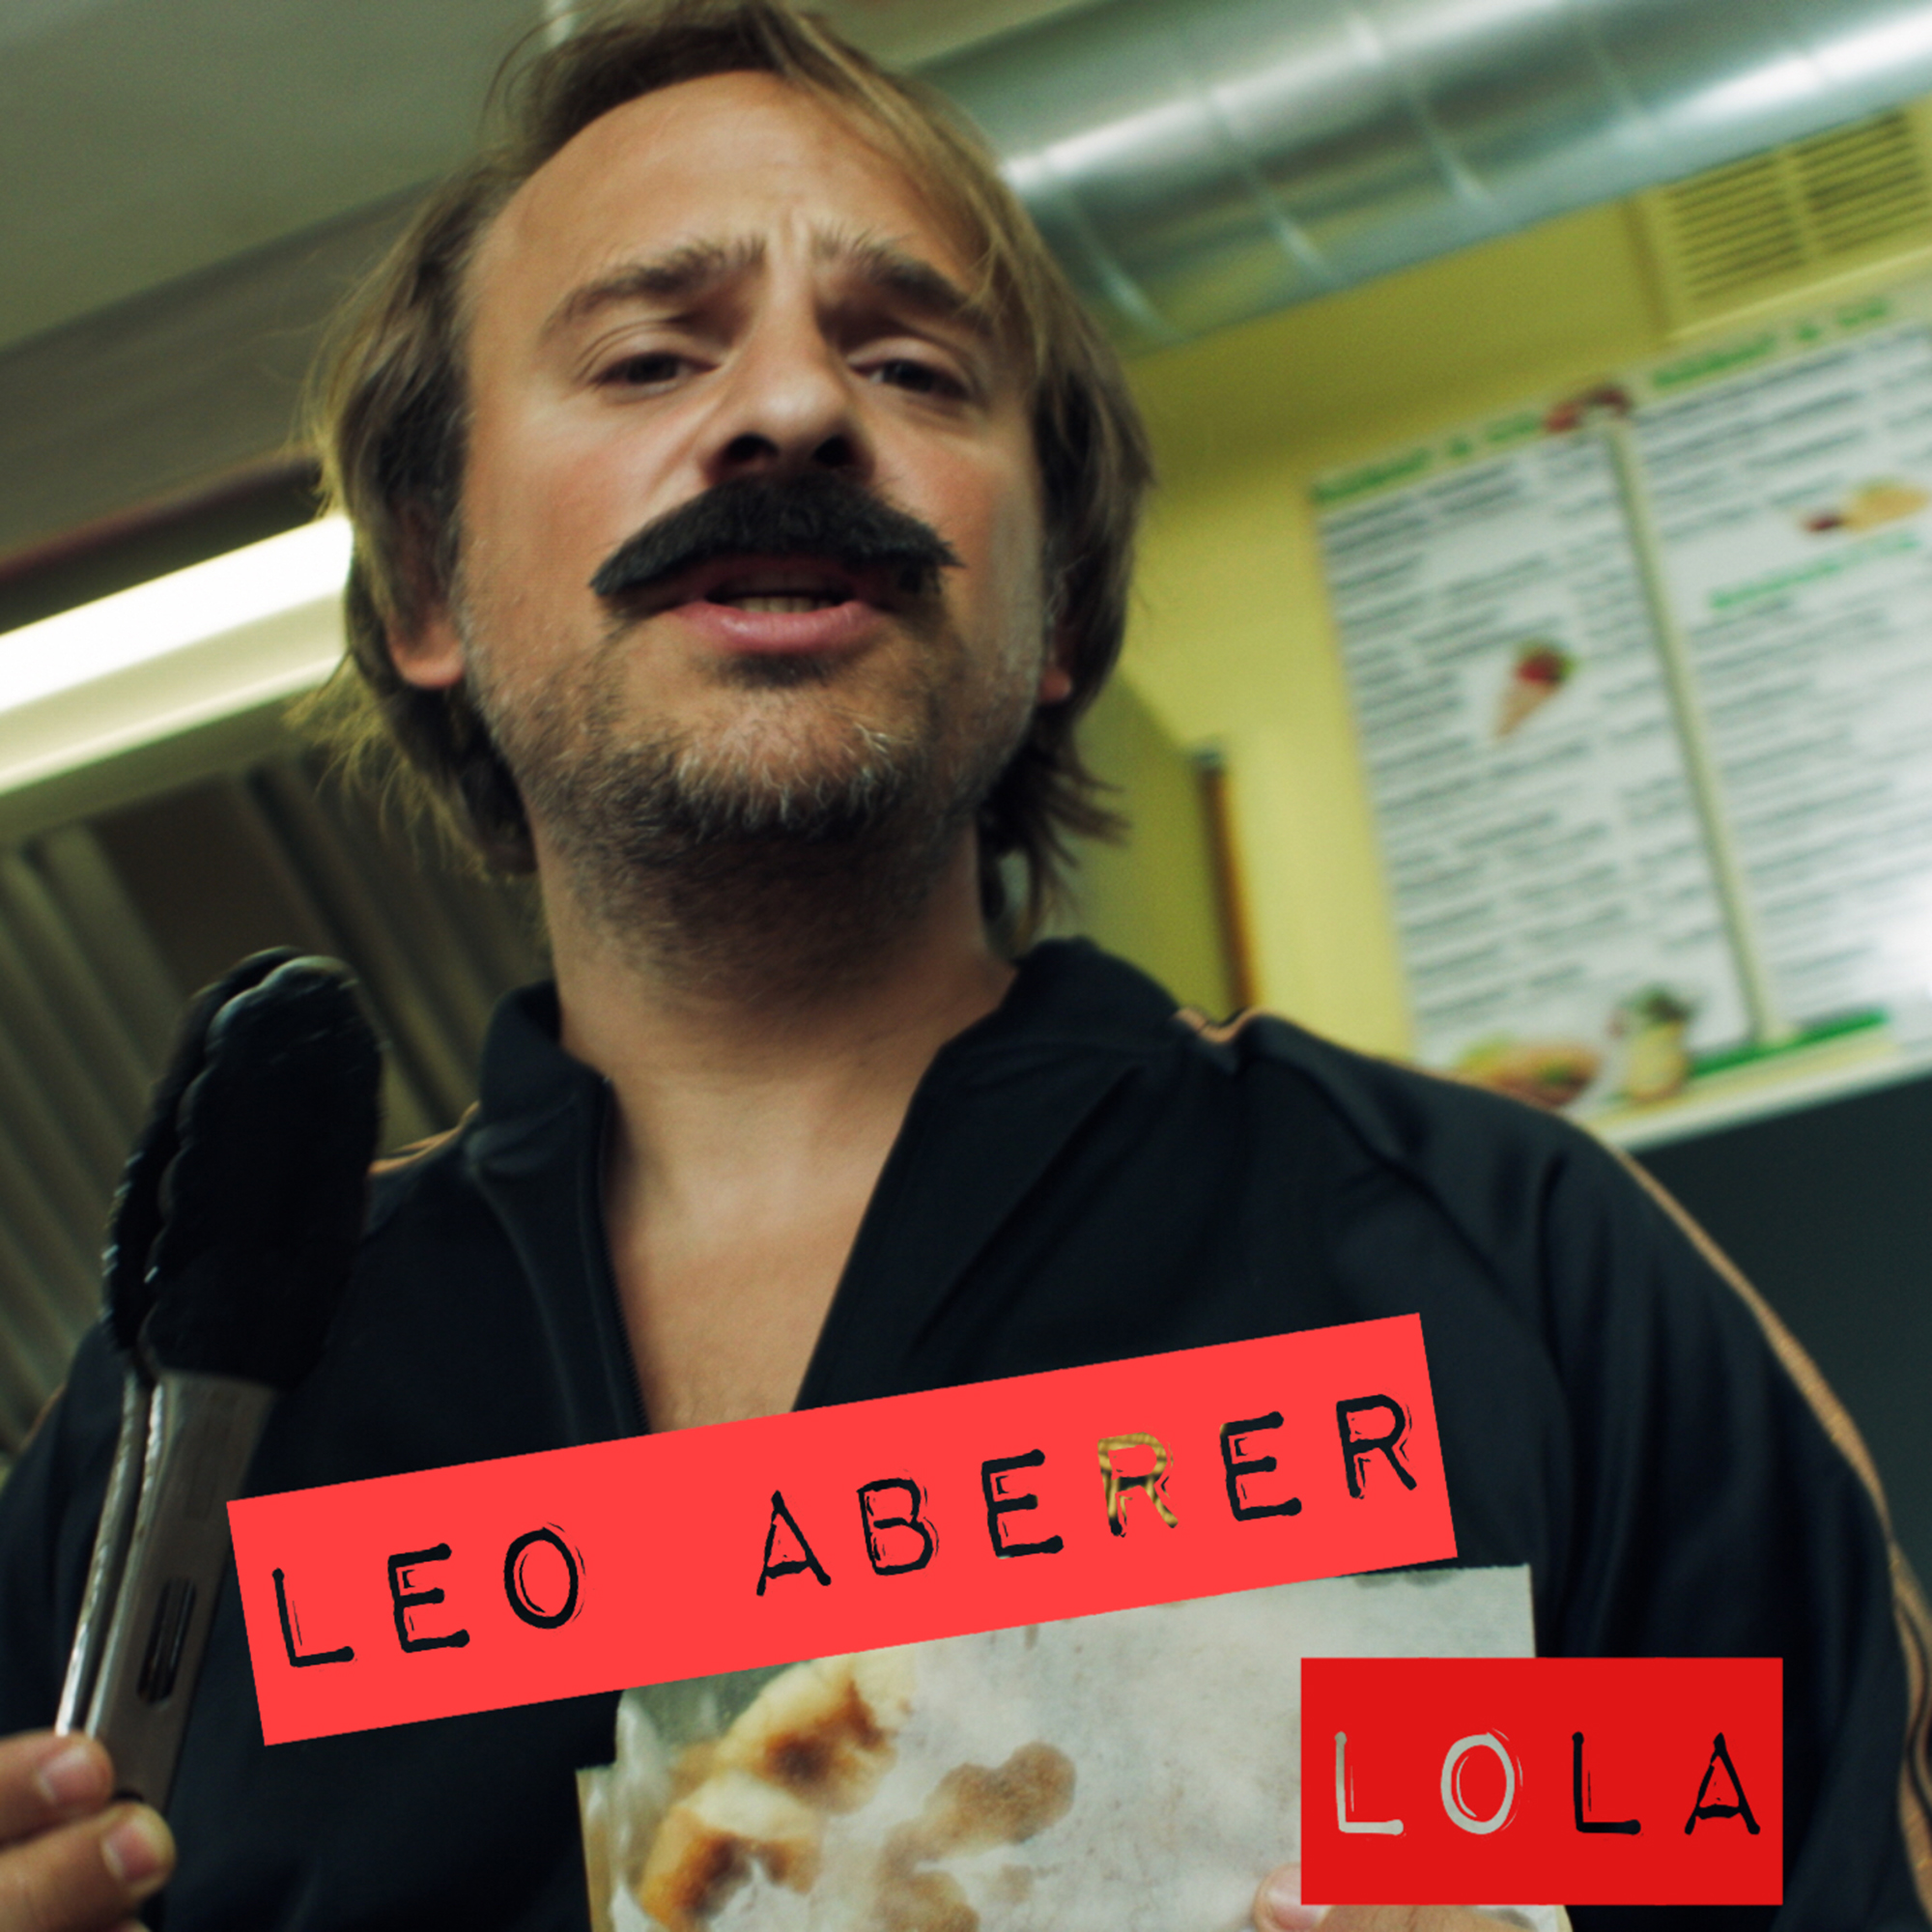 Leo_Aberer_LOLA_COVER.PNG